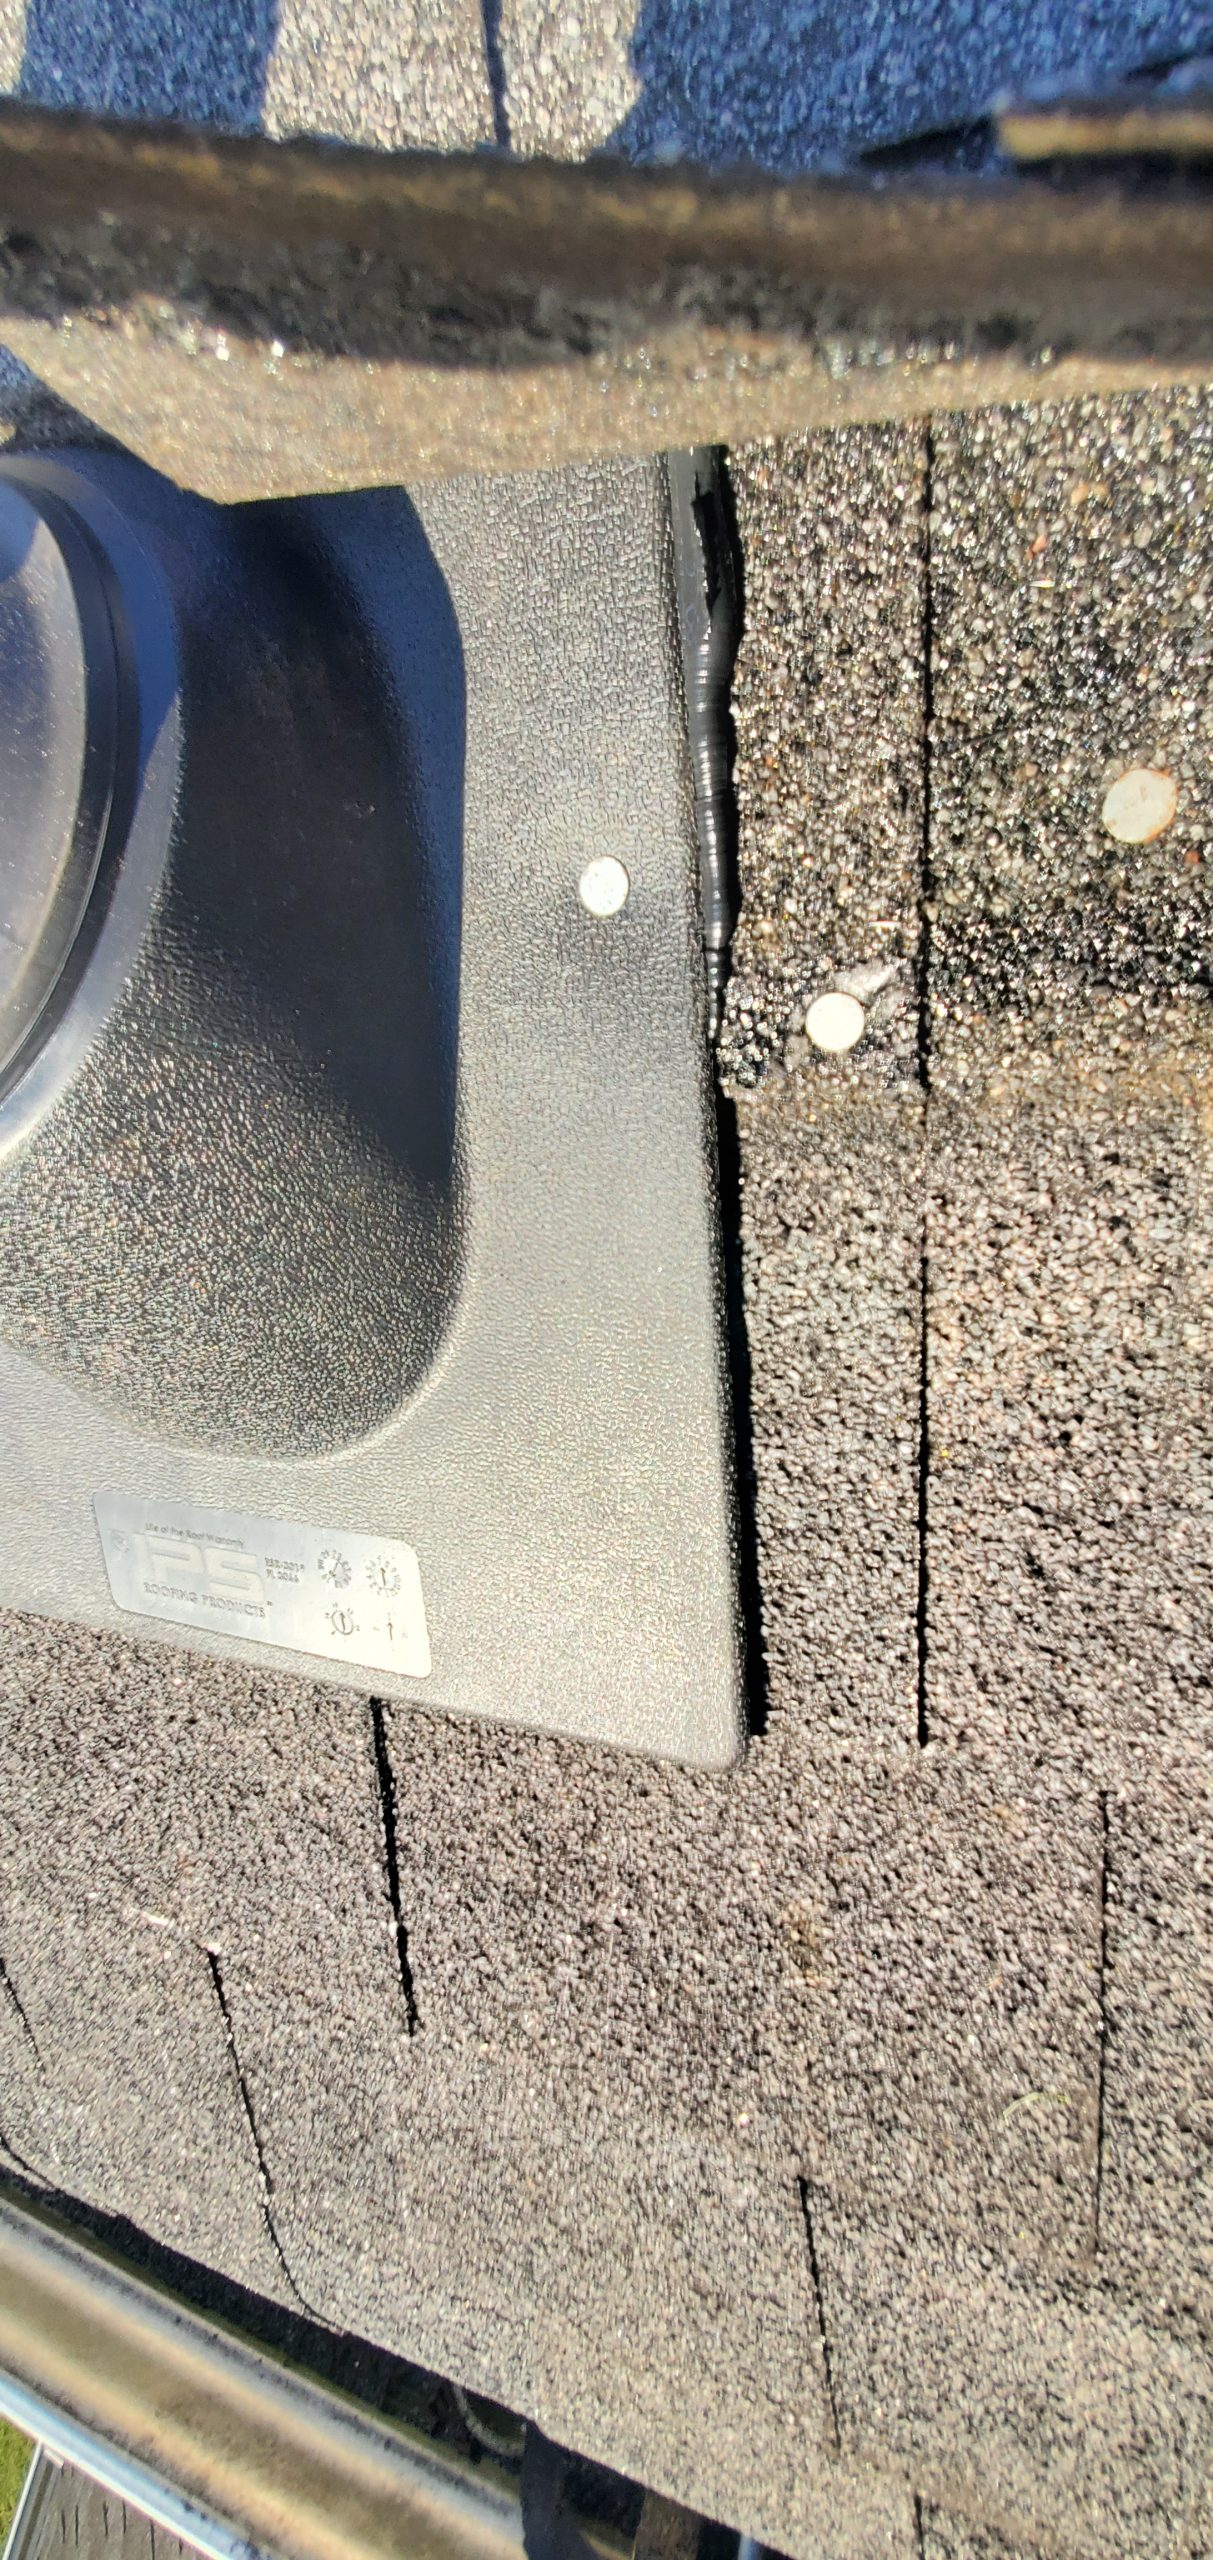 A view of a newly installed pipe boot on the roof.